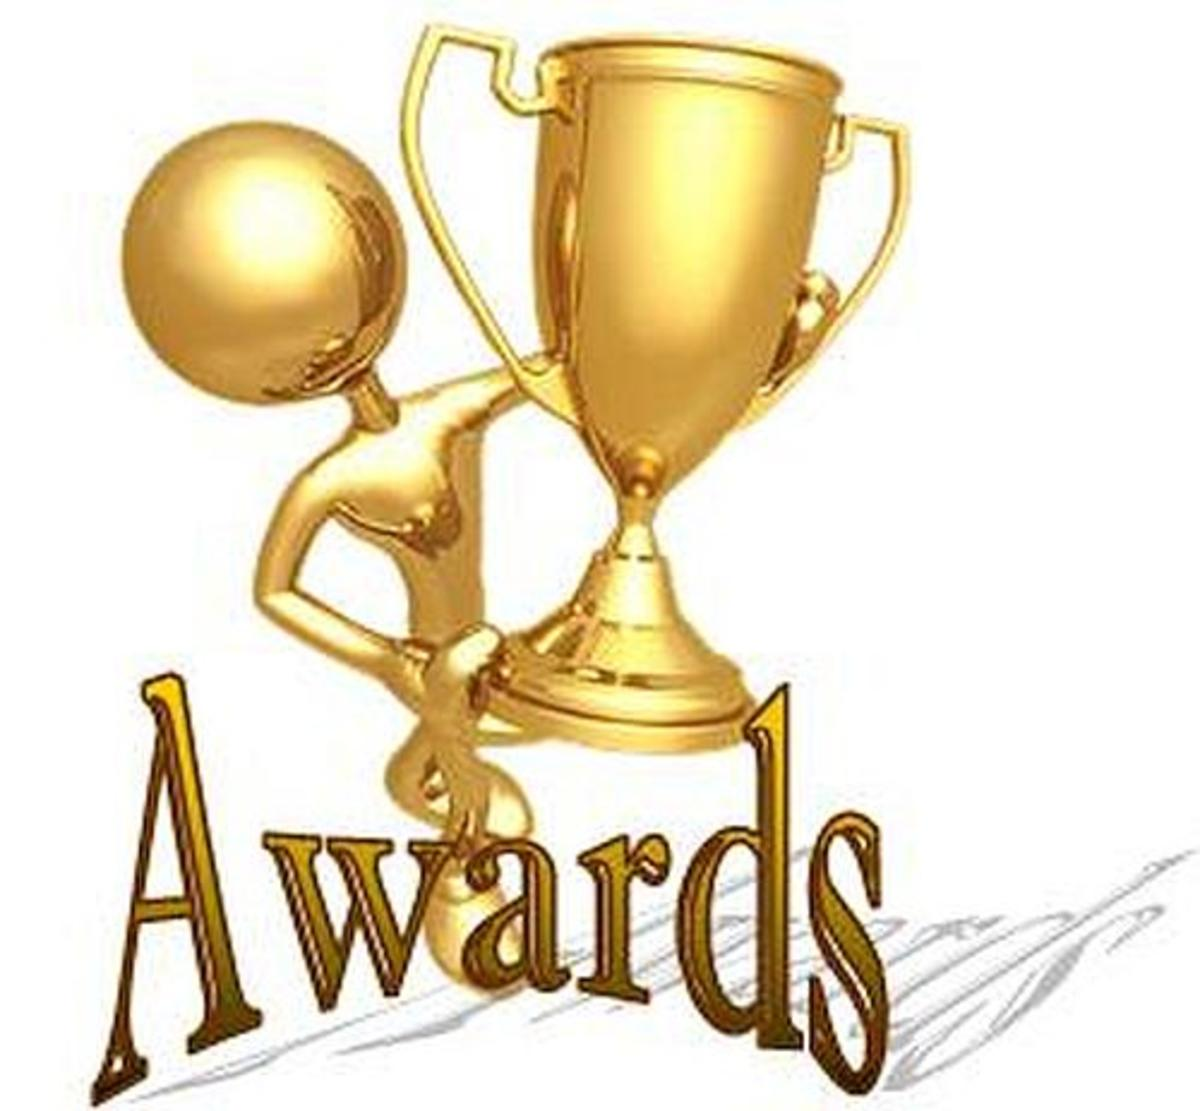 Awards are different from Rewards